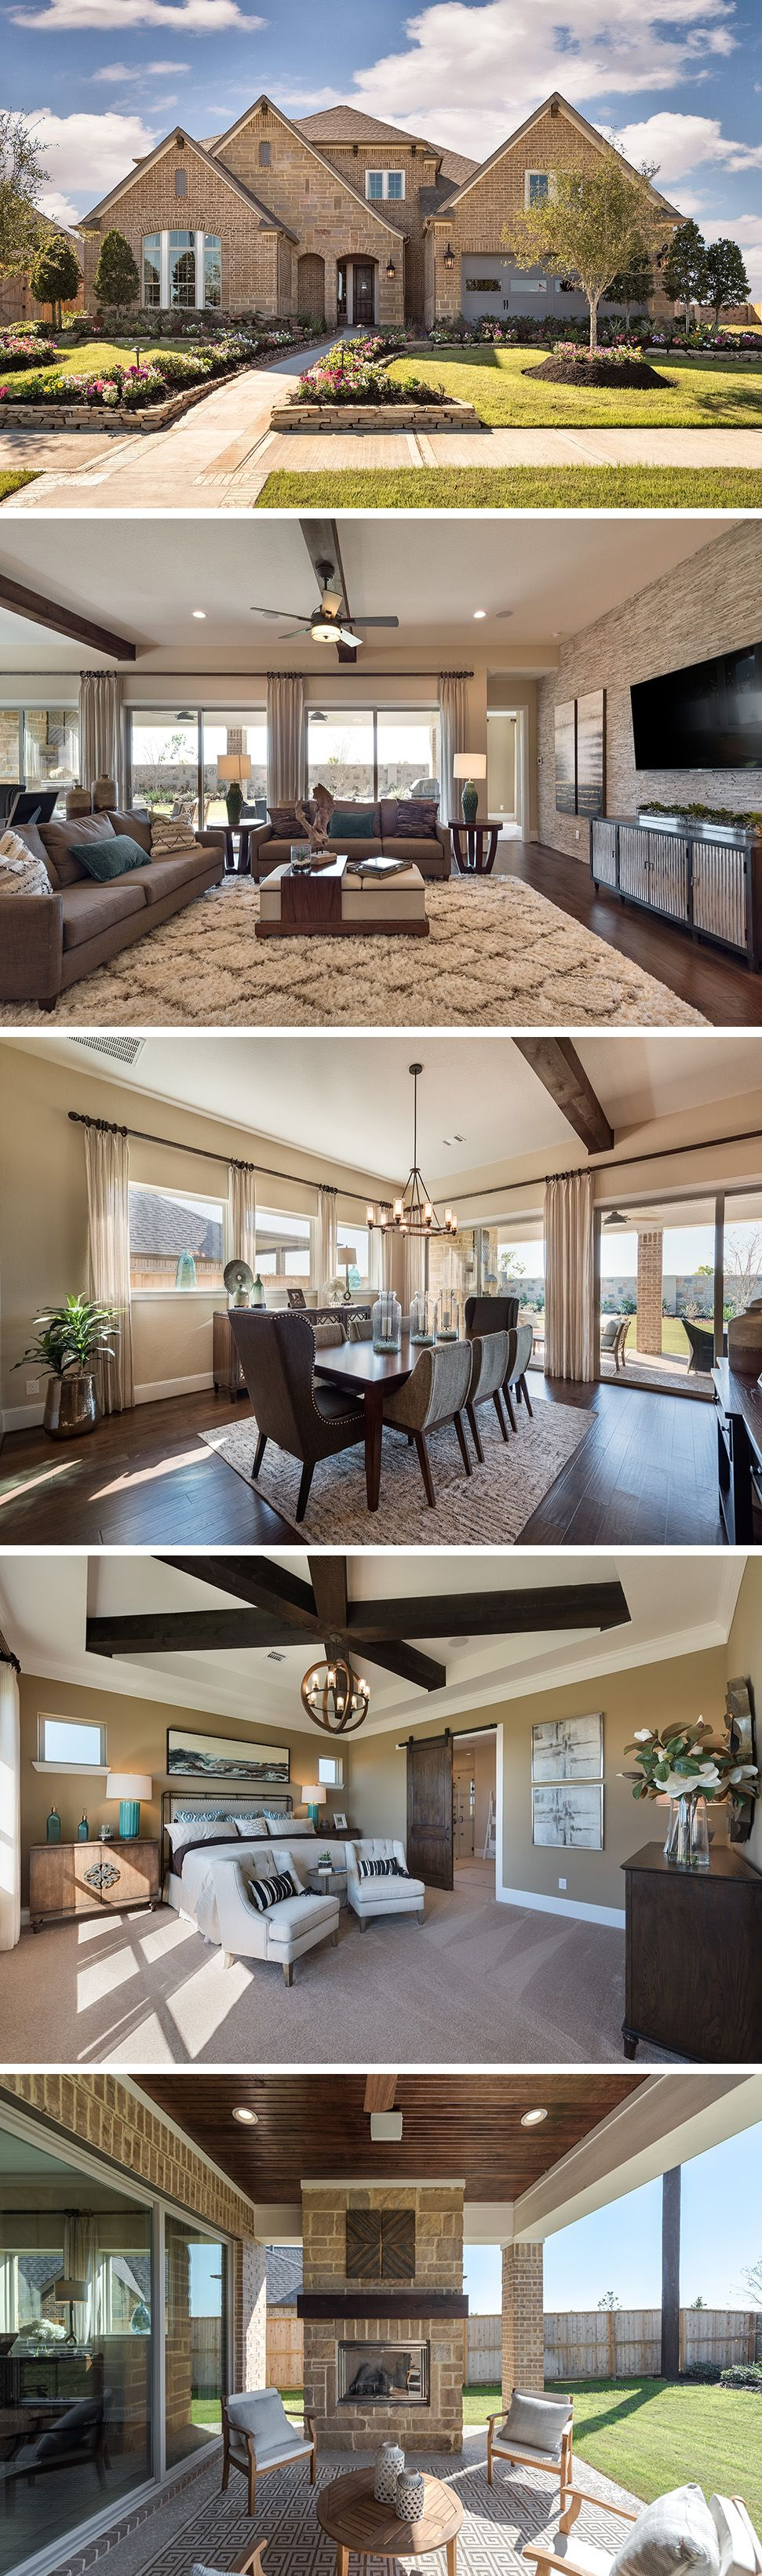 The master planned community of jordan ranch featuring over